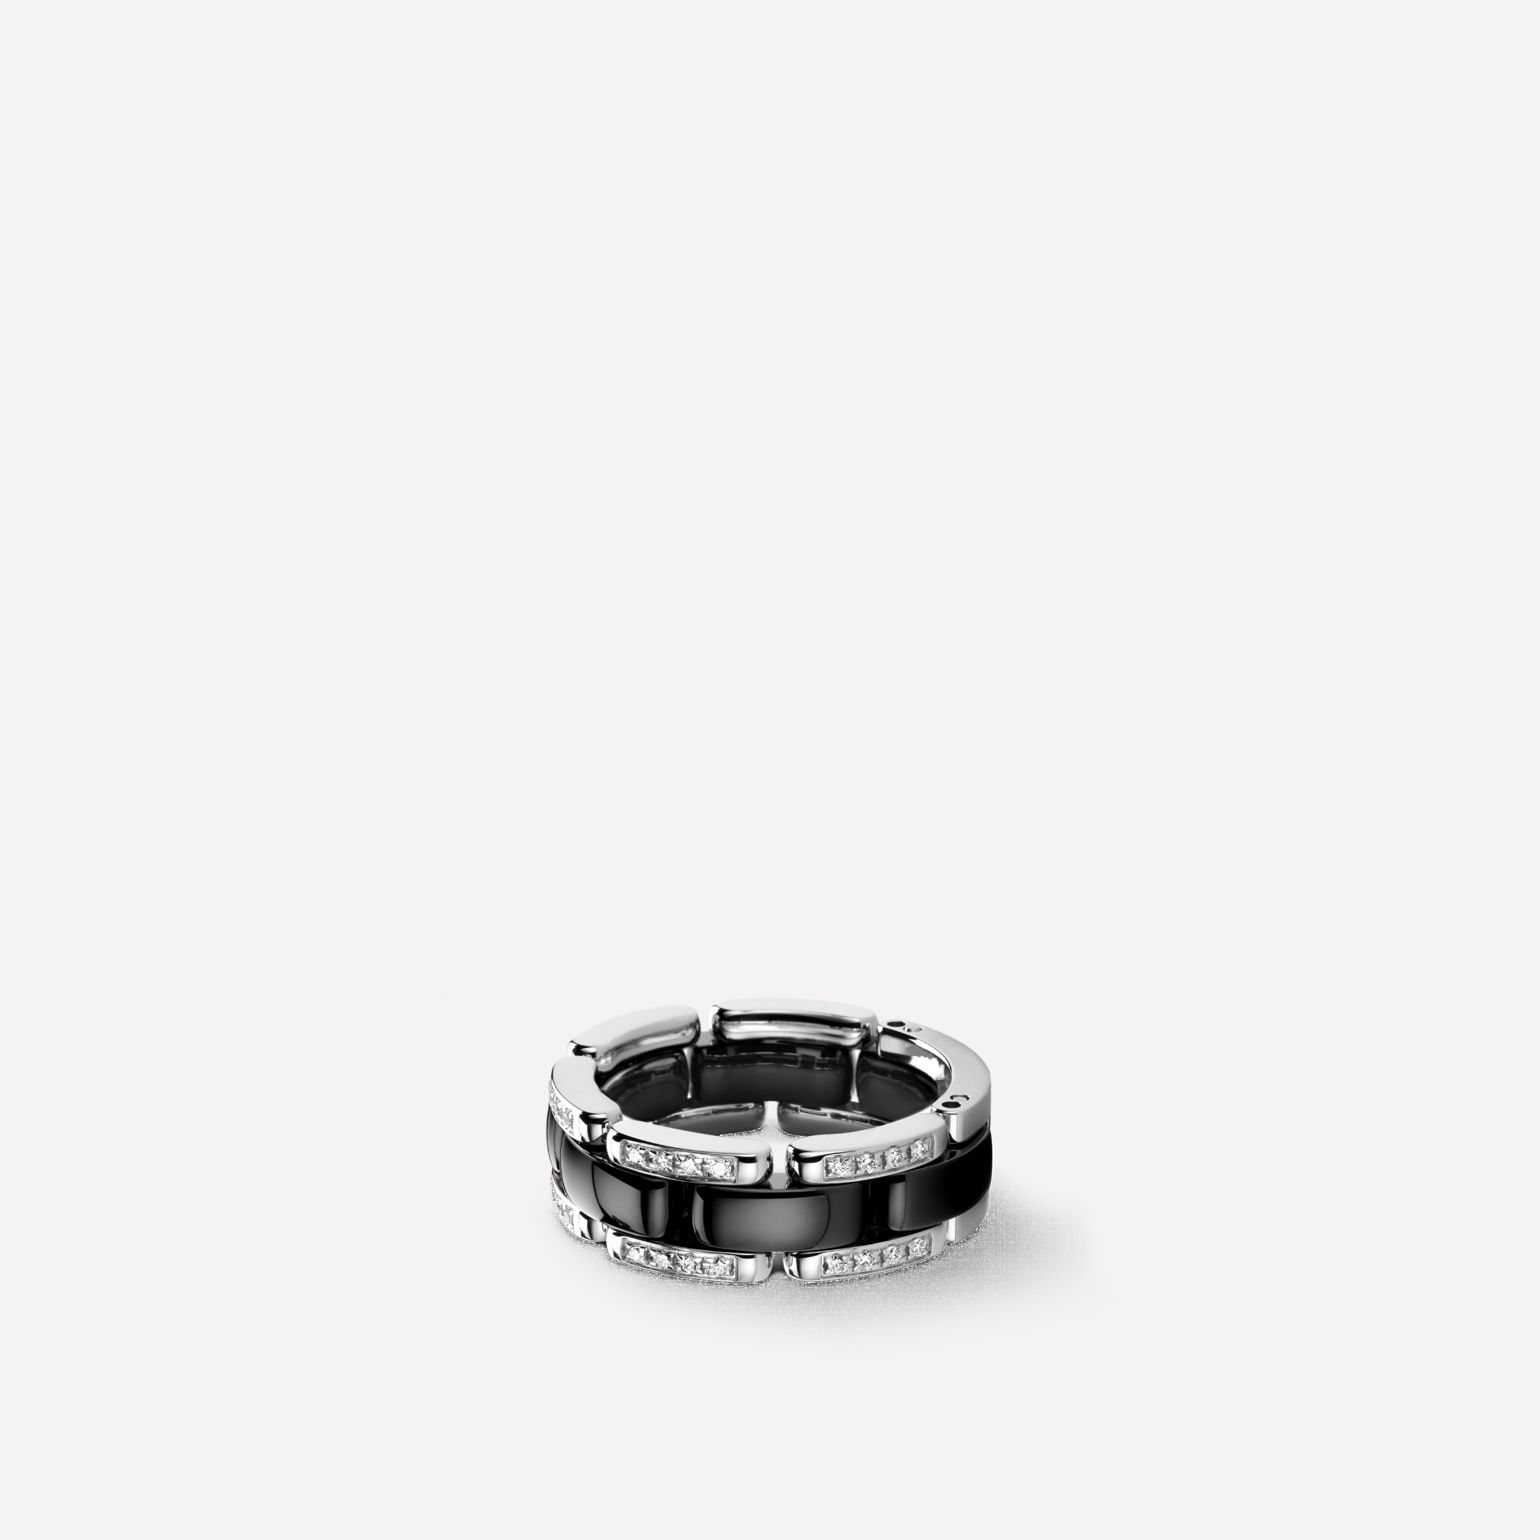 Ultra Ring Ultra ring in black ceramic, 18K white gold and diamonds. Medium, flexible version.